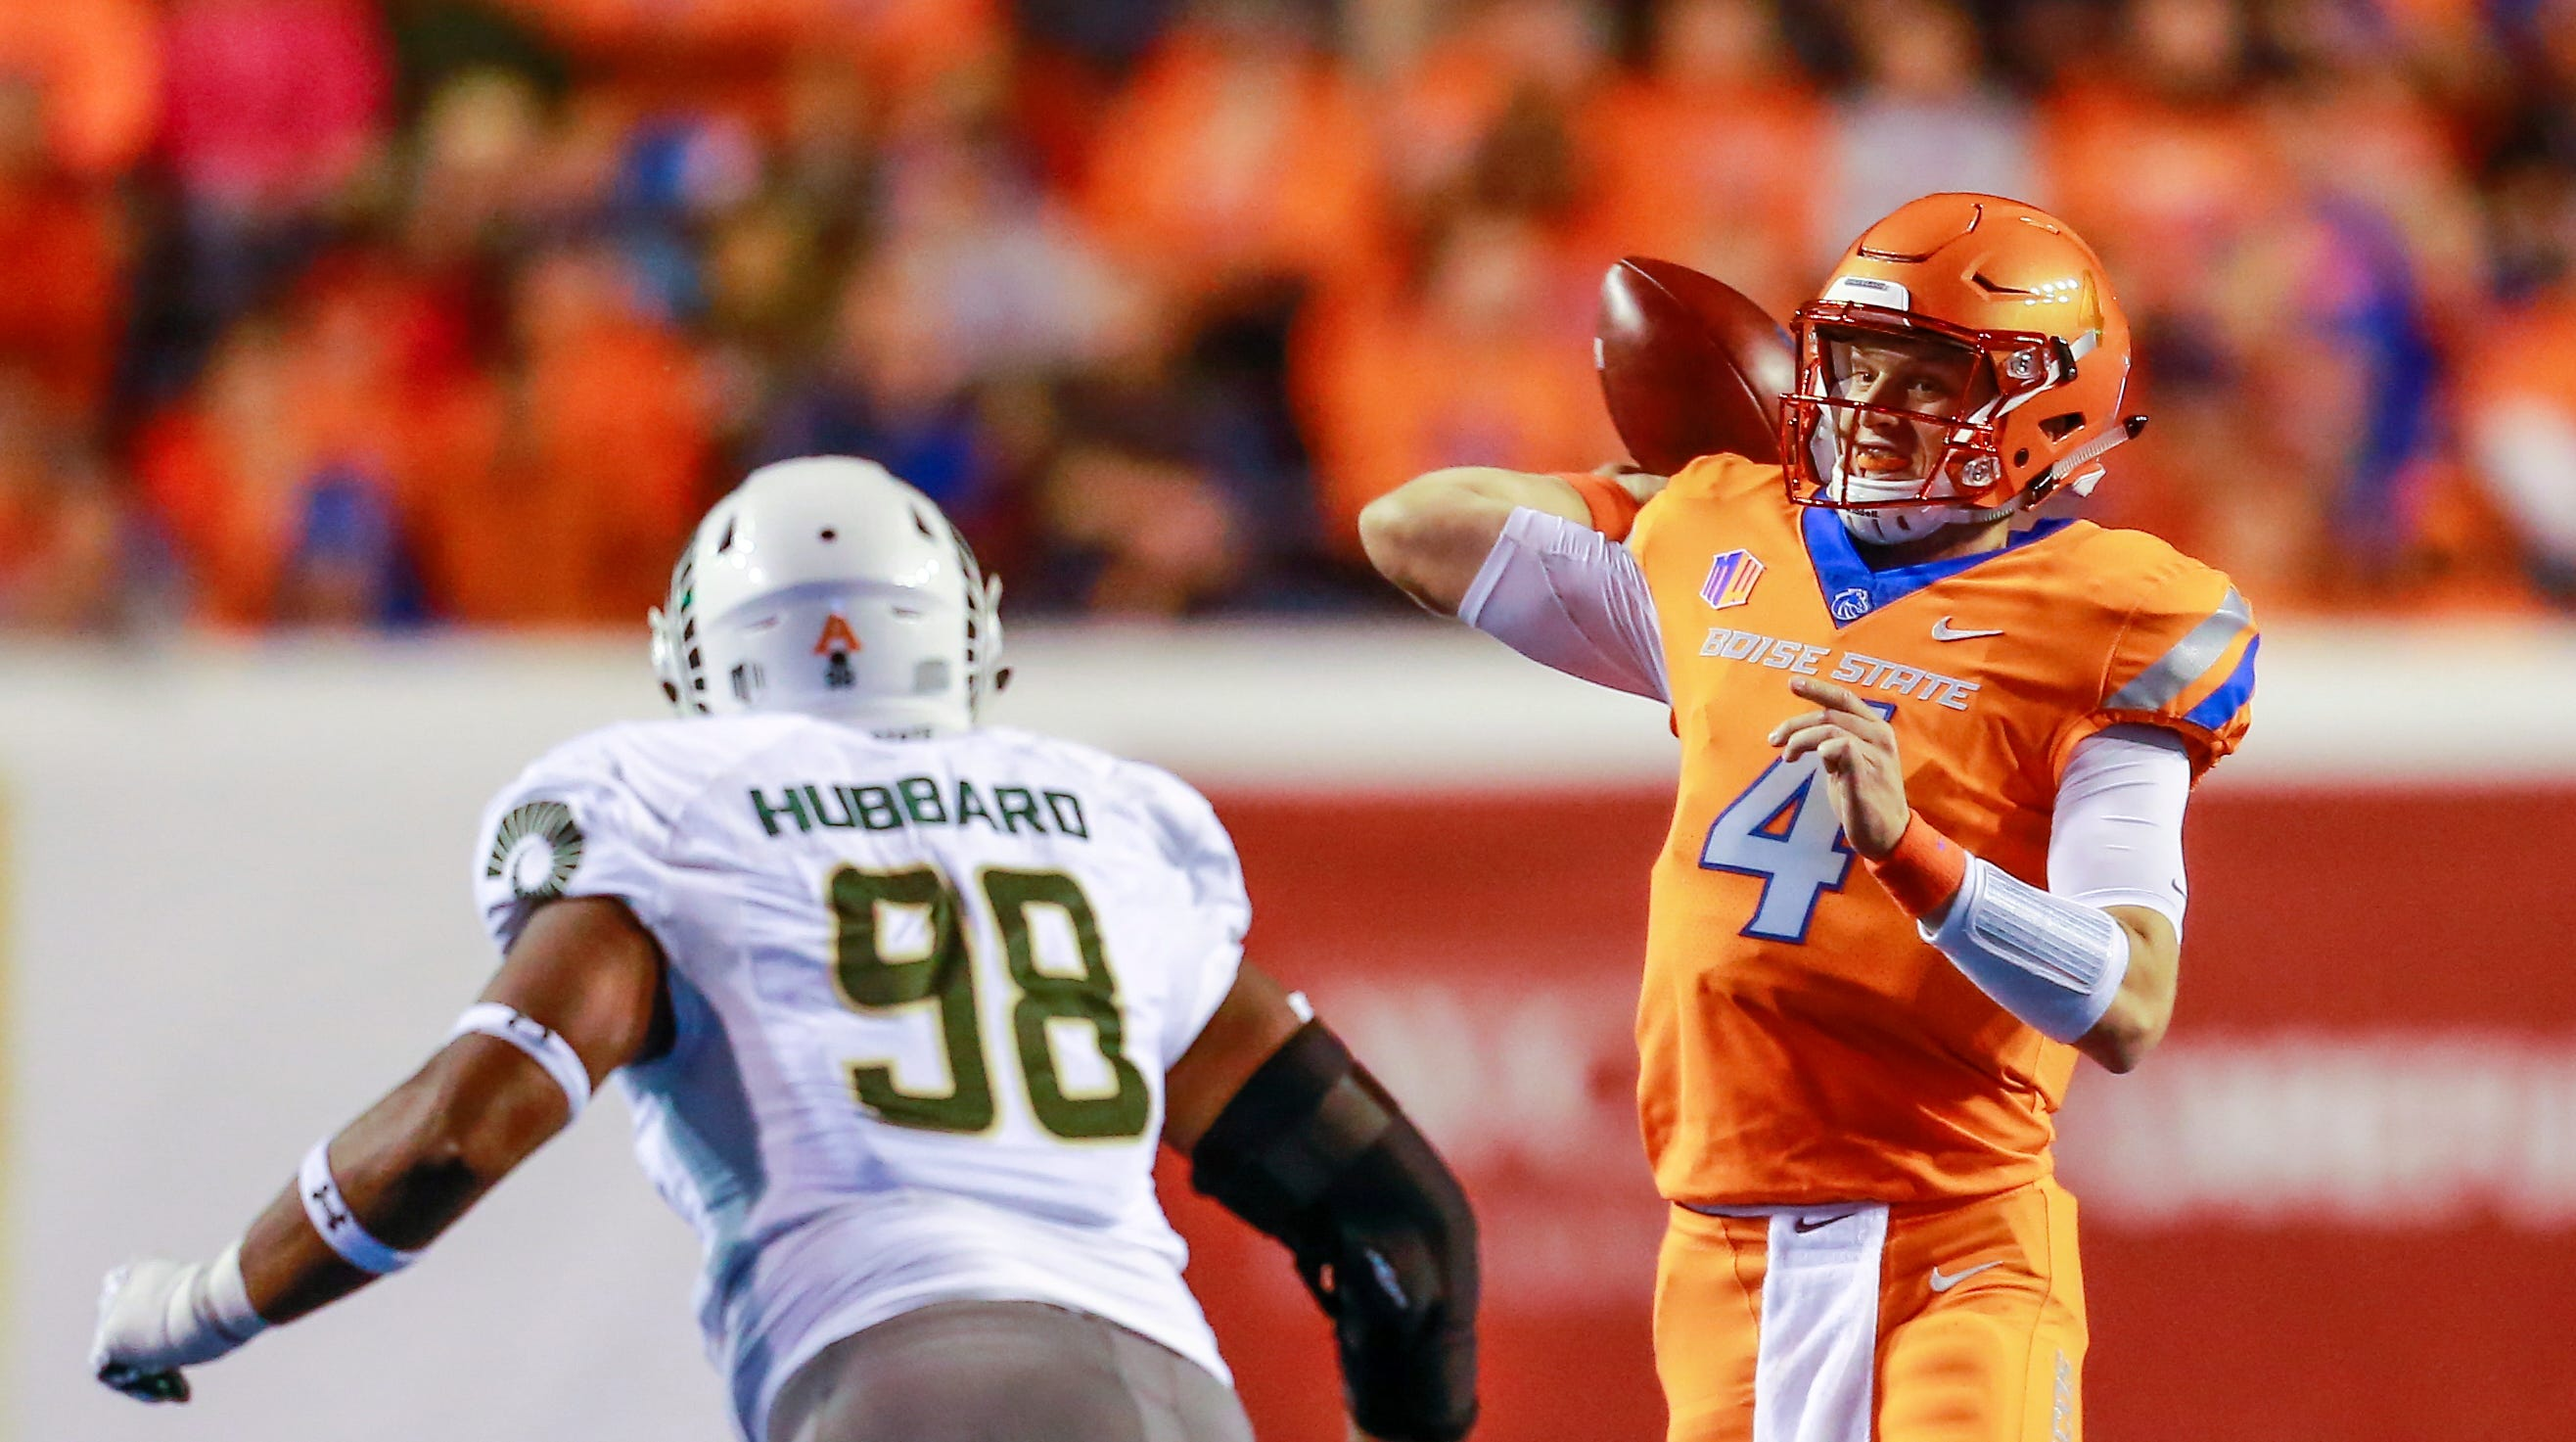 3 thoughts as the Boise State football team blasts Colorado State University